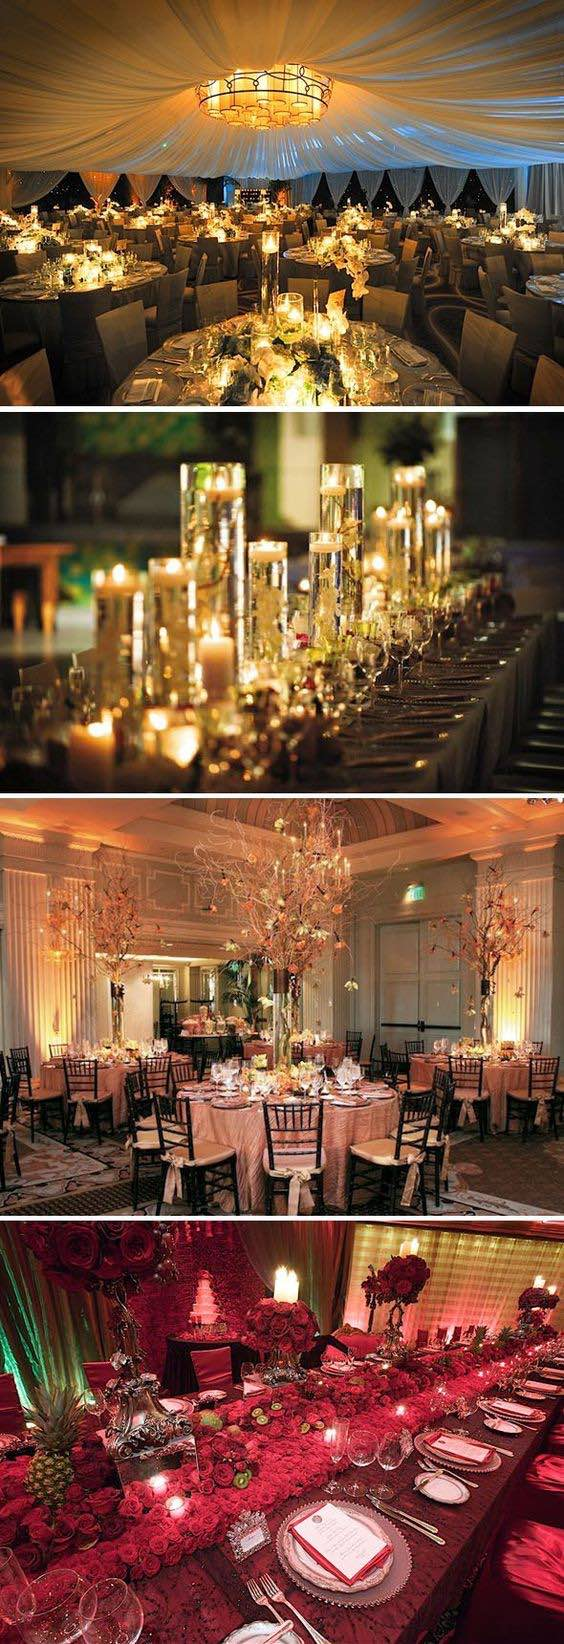 How to choose your wedding style: How about an elegant wedding decor?